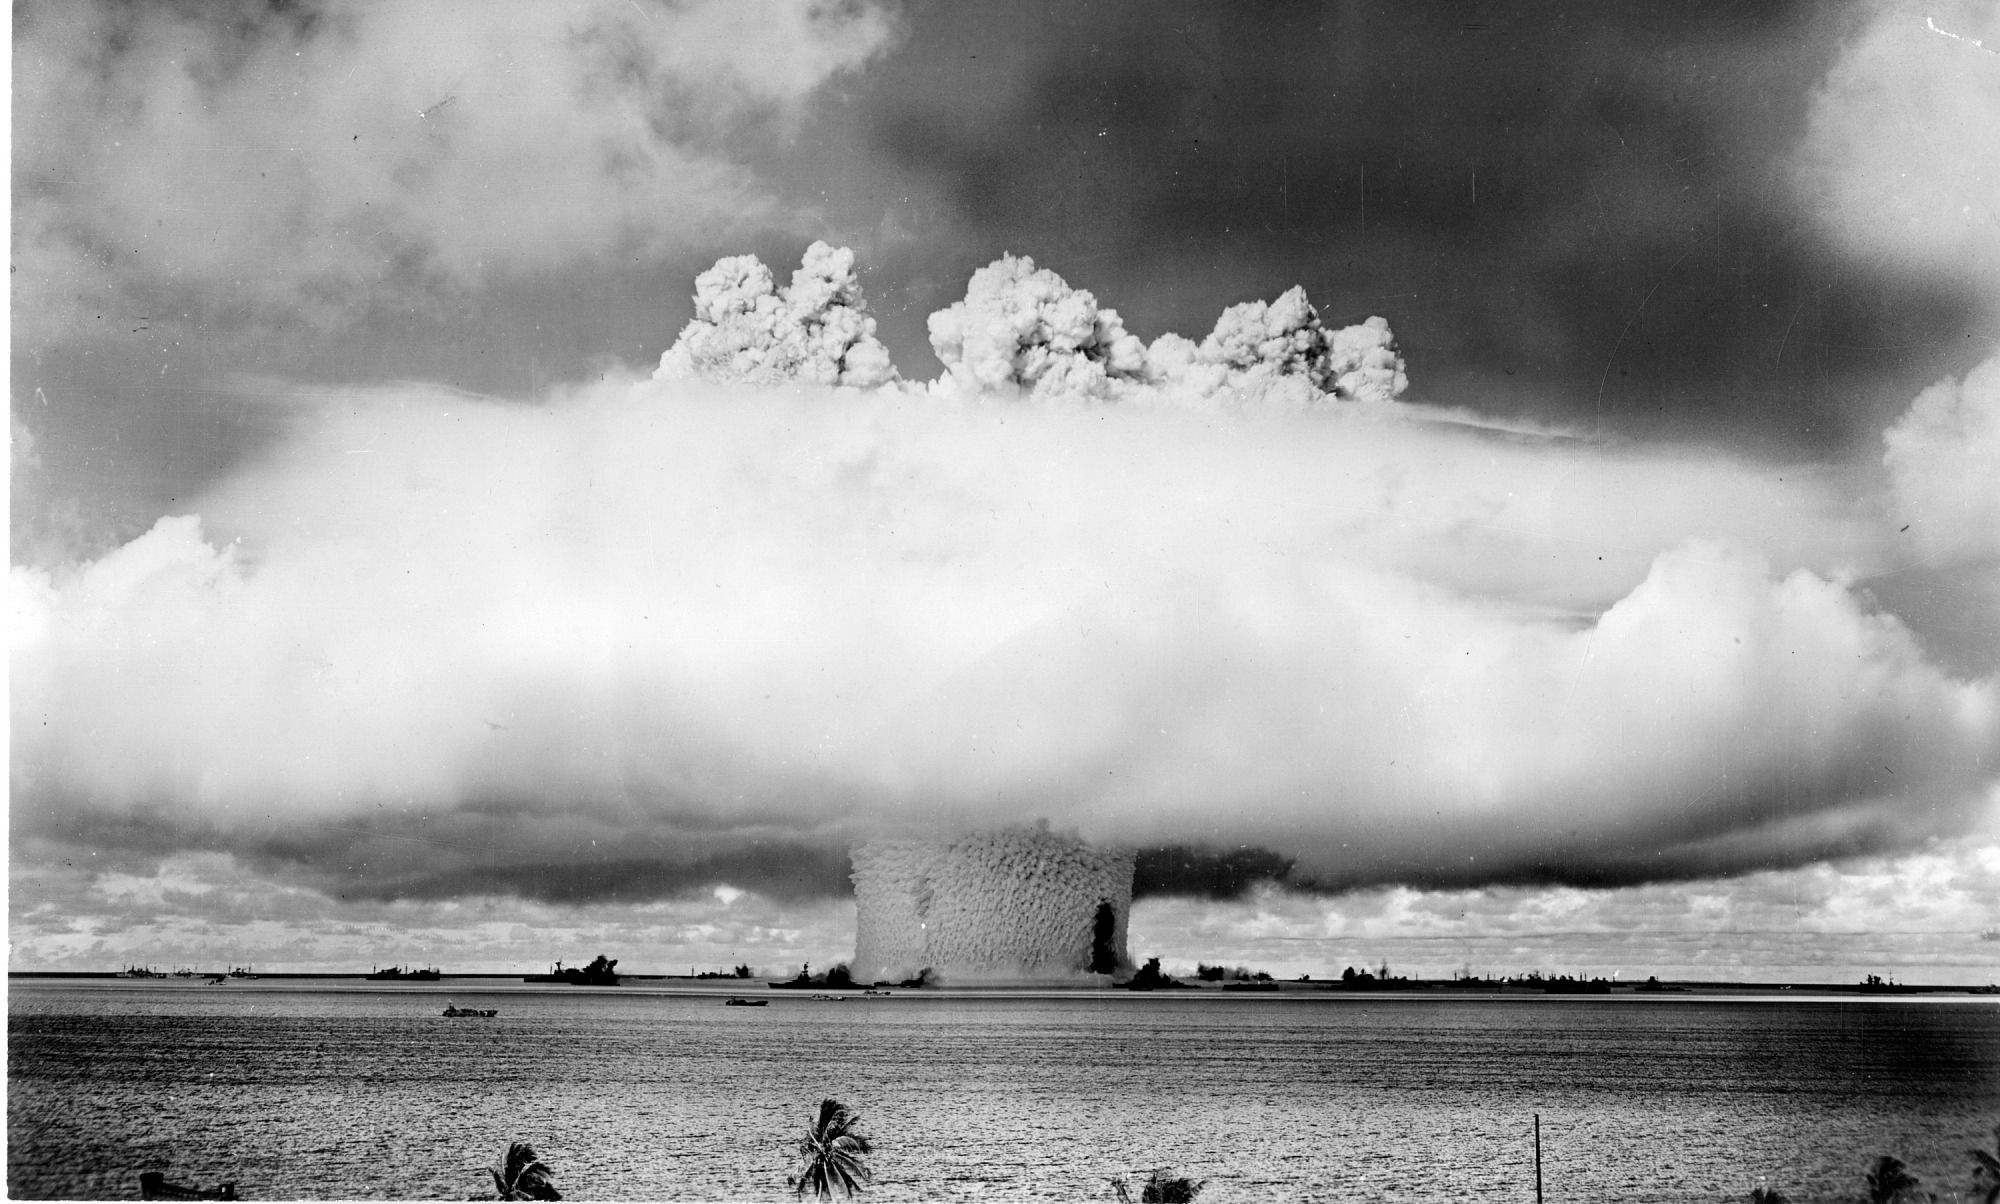 Preview of The Atomic Blast on Bikini Atoll from Sea Level